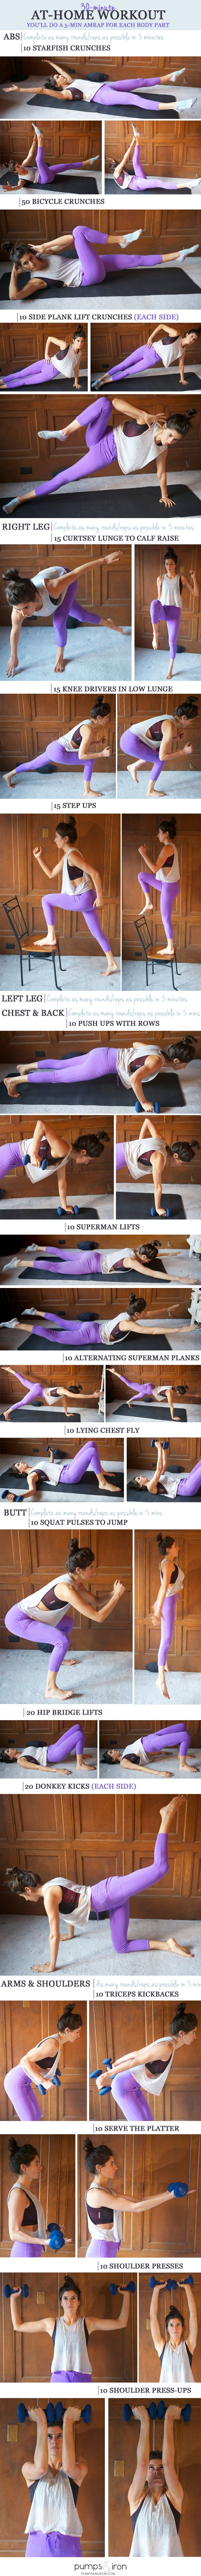 30-Minute At-Home Workout -- you'll spend 5 minutes on each body part